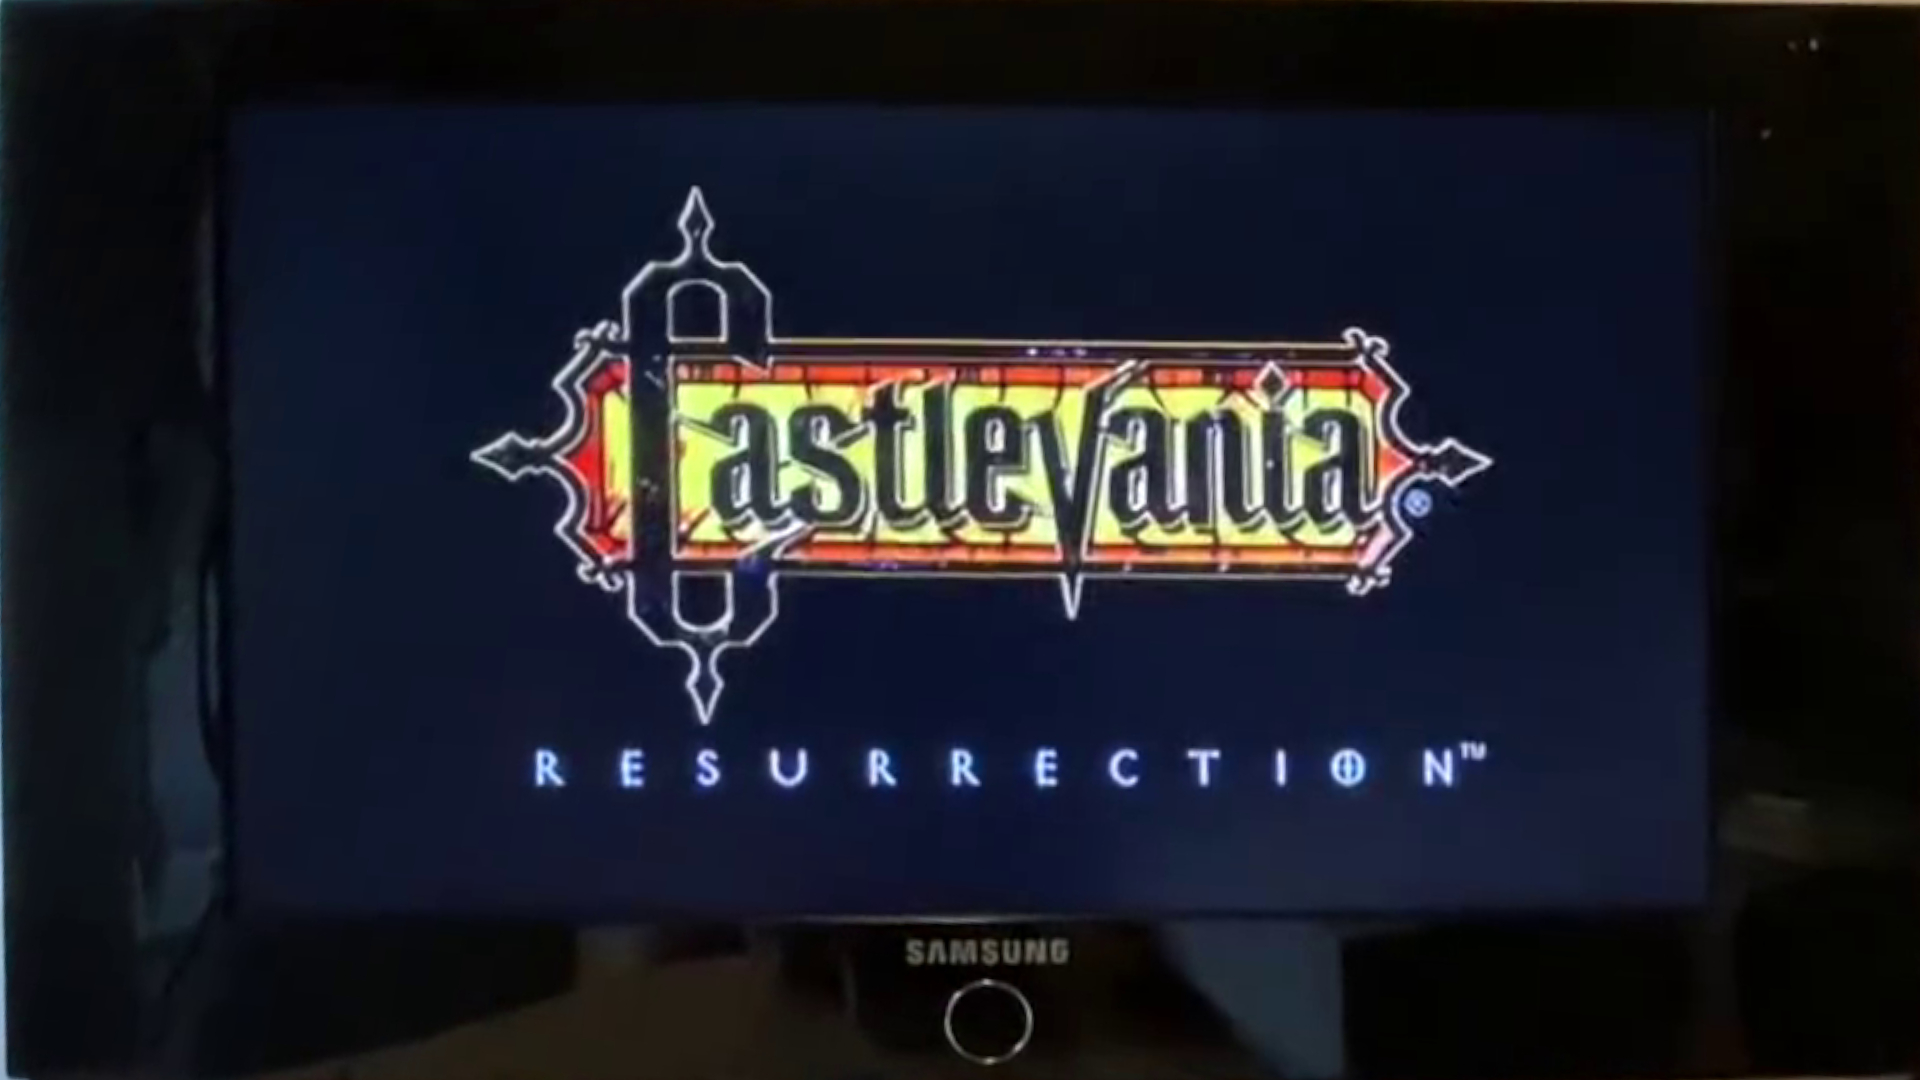 Castlevania Resurrection Sees Light Of Day